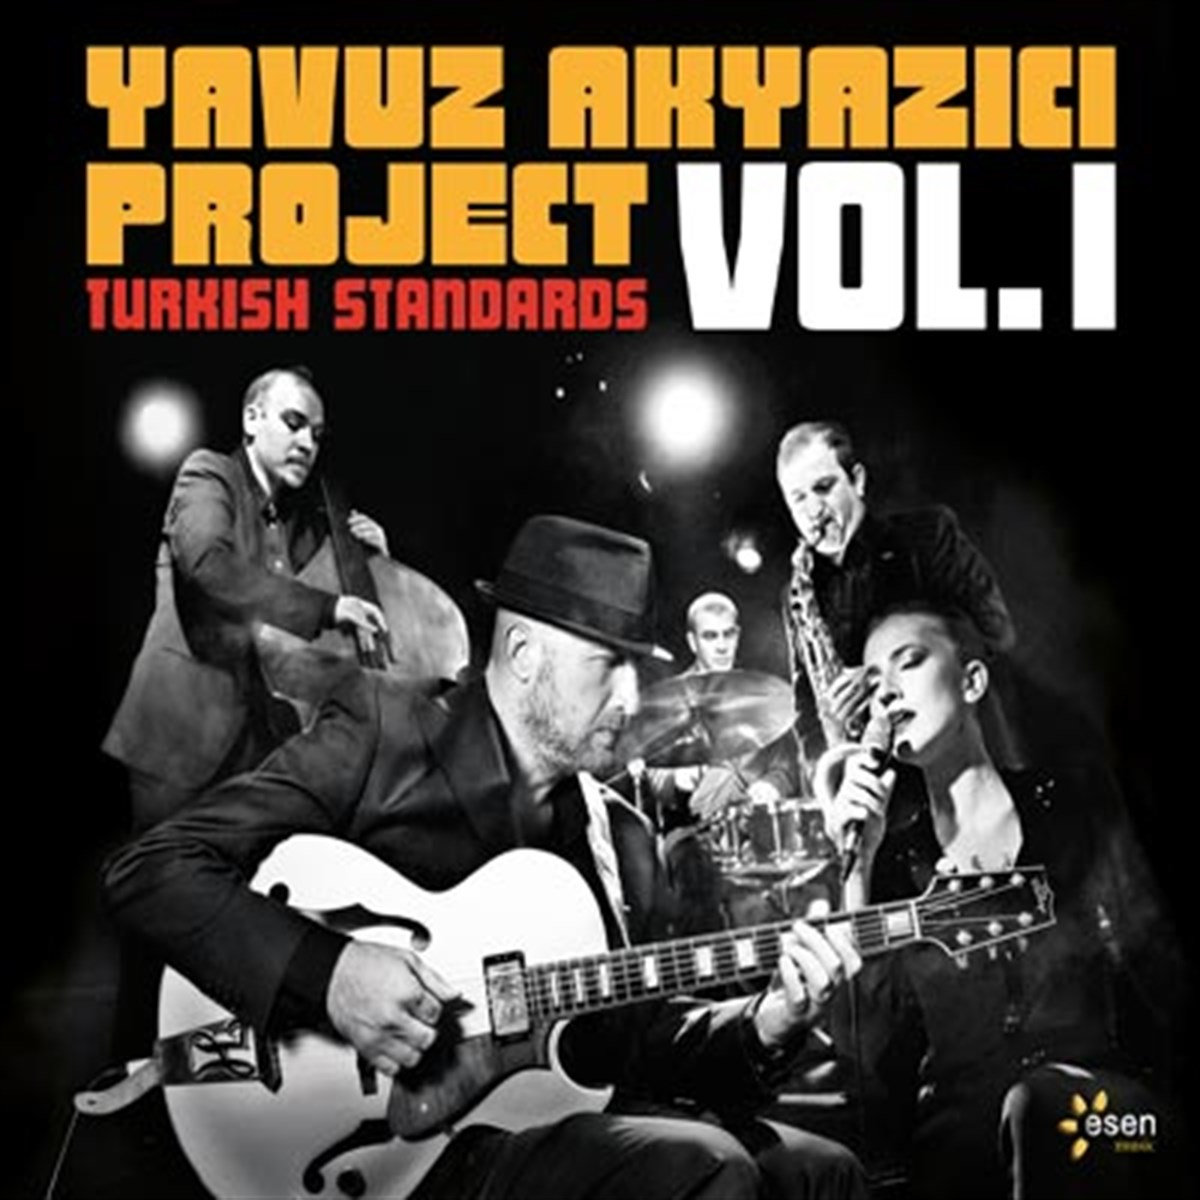 Yavuz Akyazıcı Project Turkish Standards, Vol. 1